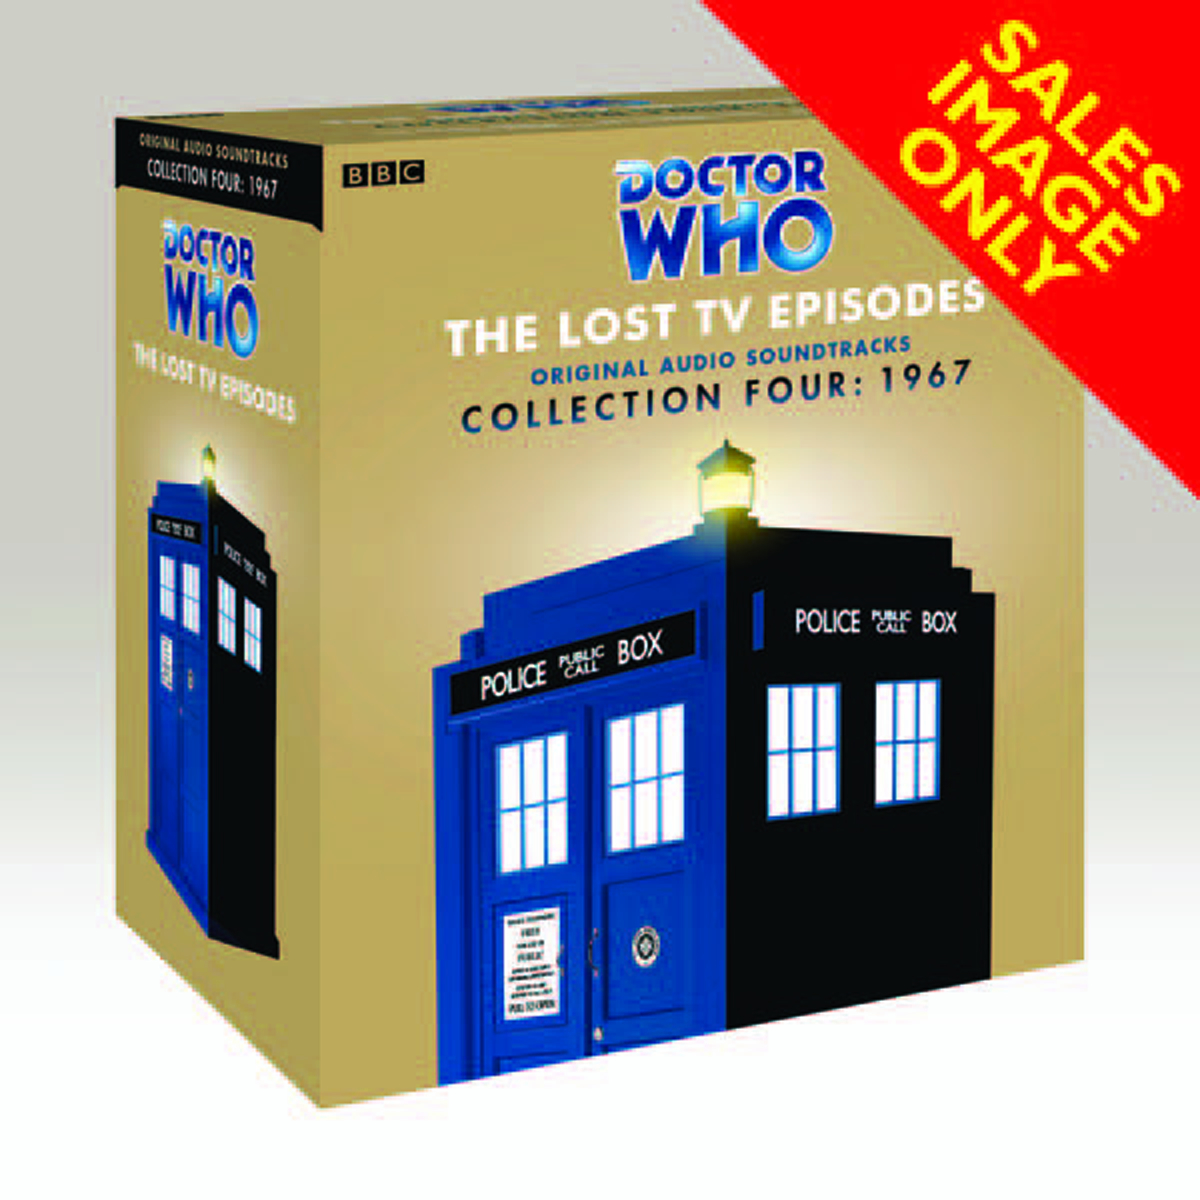 JAN121388 - DOCTOR WHO LOST TV EPISODES AUDIO CD COLL 04